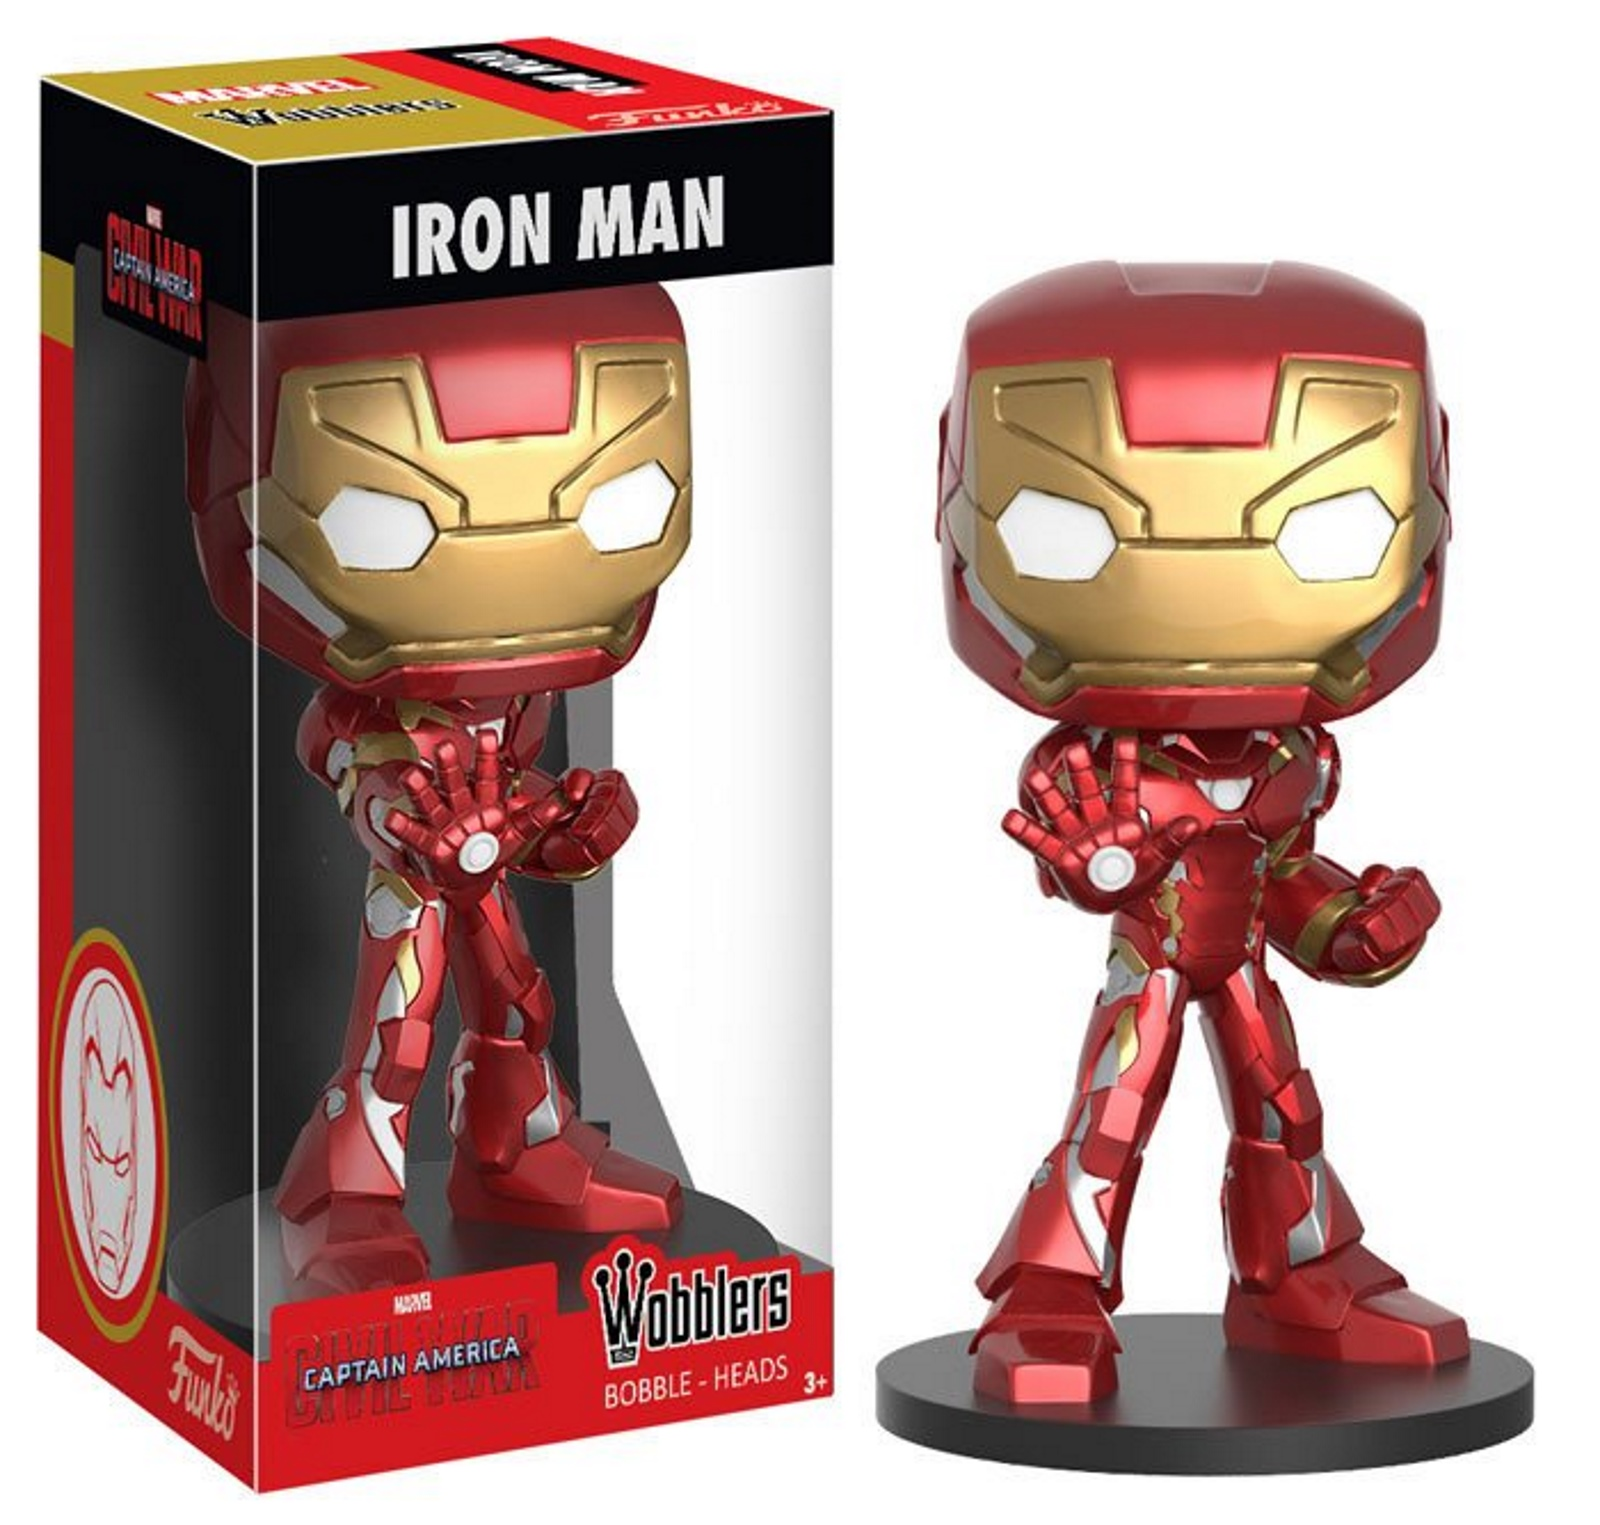 Iron Man Marvel Captain America Civil War Wacky Wobbler Bobble-head